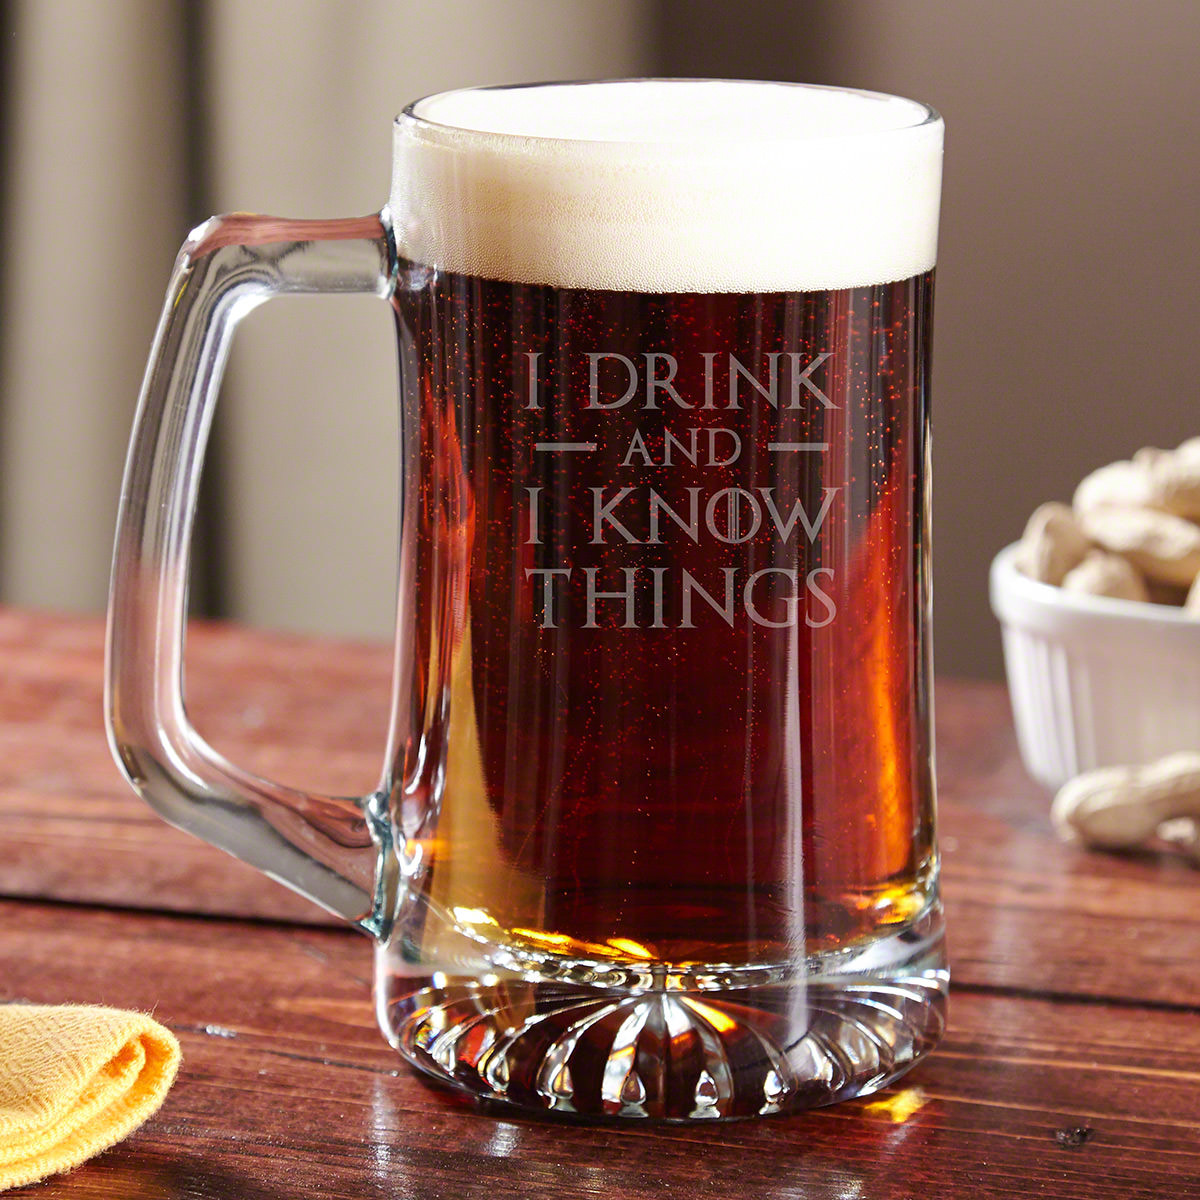 Celebrate Game of Thrones properly with our I Drink and I Know Things mug. This beer mug pays homage to one of the greatest quotes from Tyrion Lannister. No self-respecting GoT fan should take a trip to Westeros without an I Drink and I Know Things mug by #mug